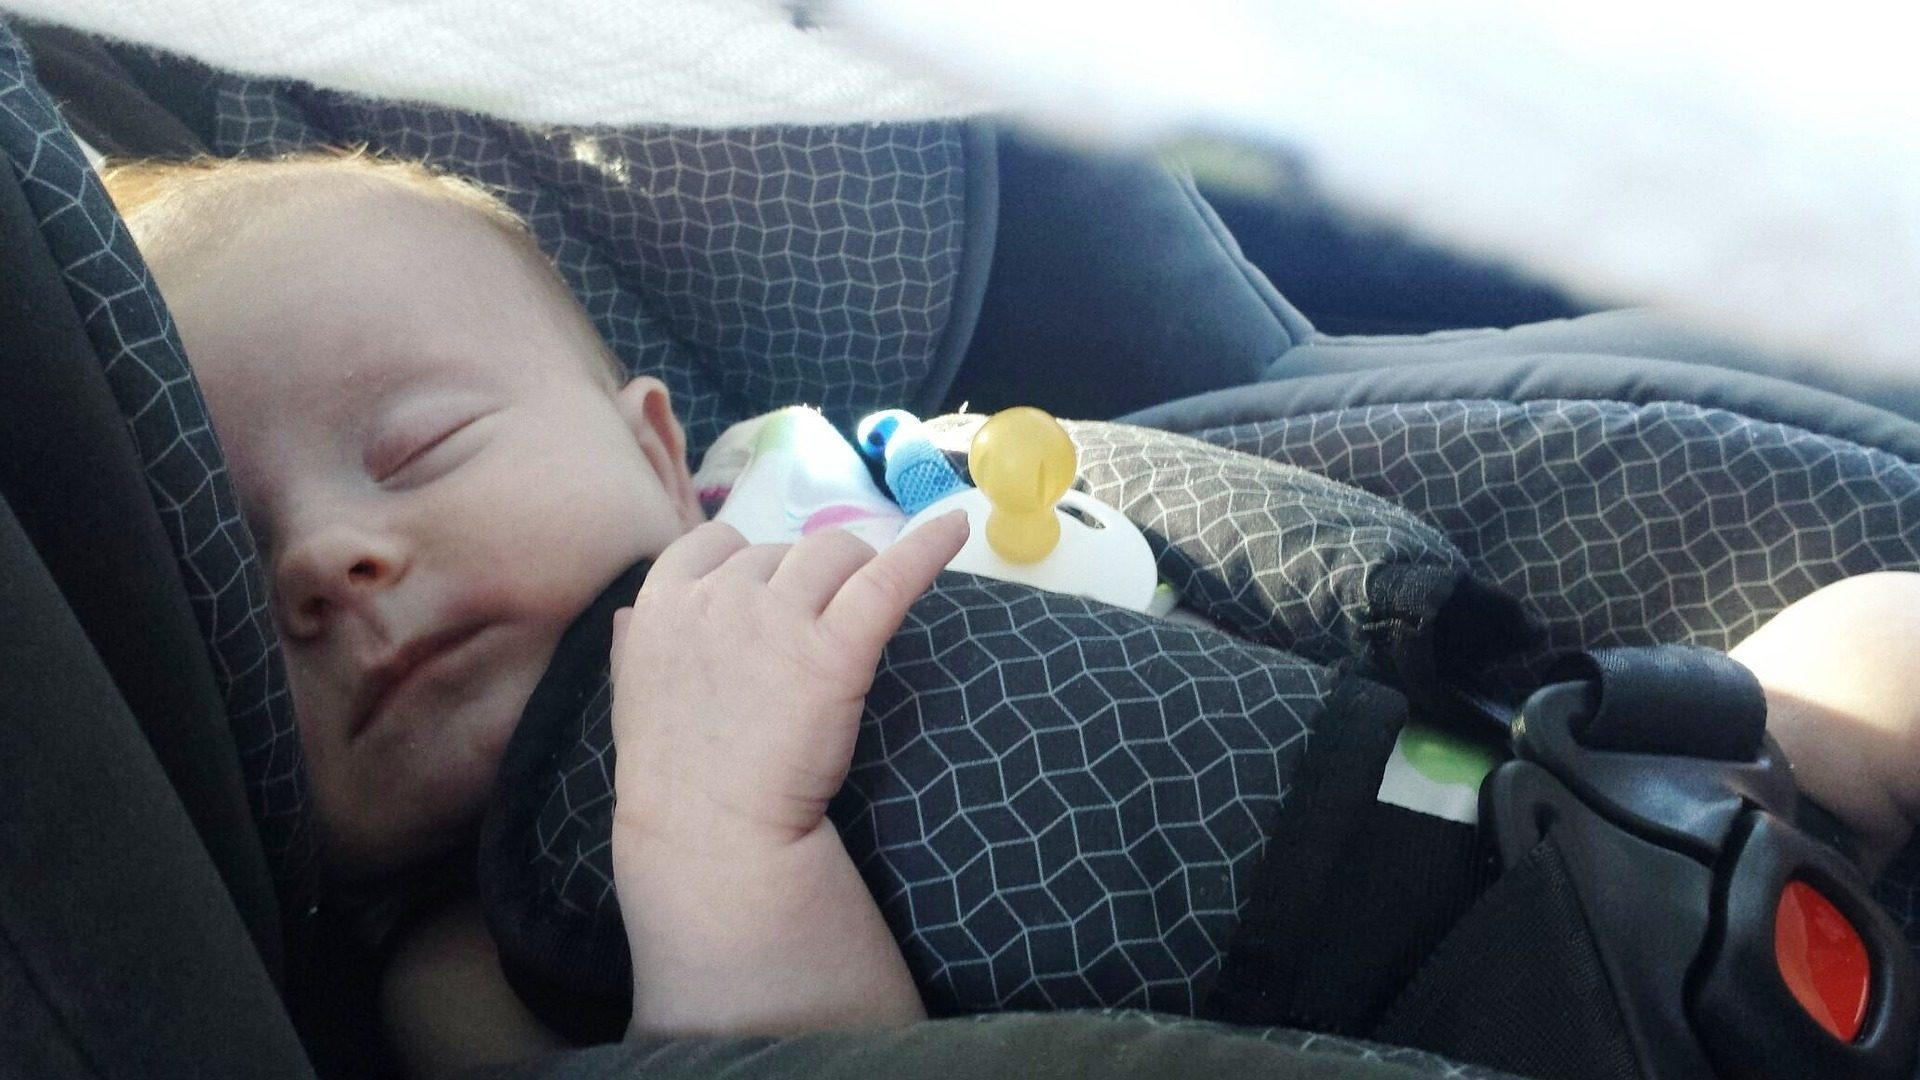 Target's bringing back car seat recycle for discount [watch]